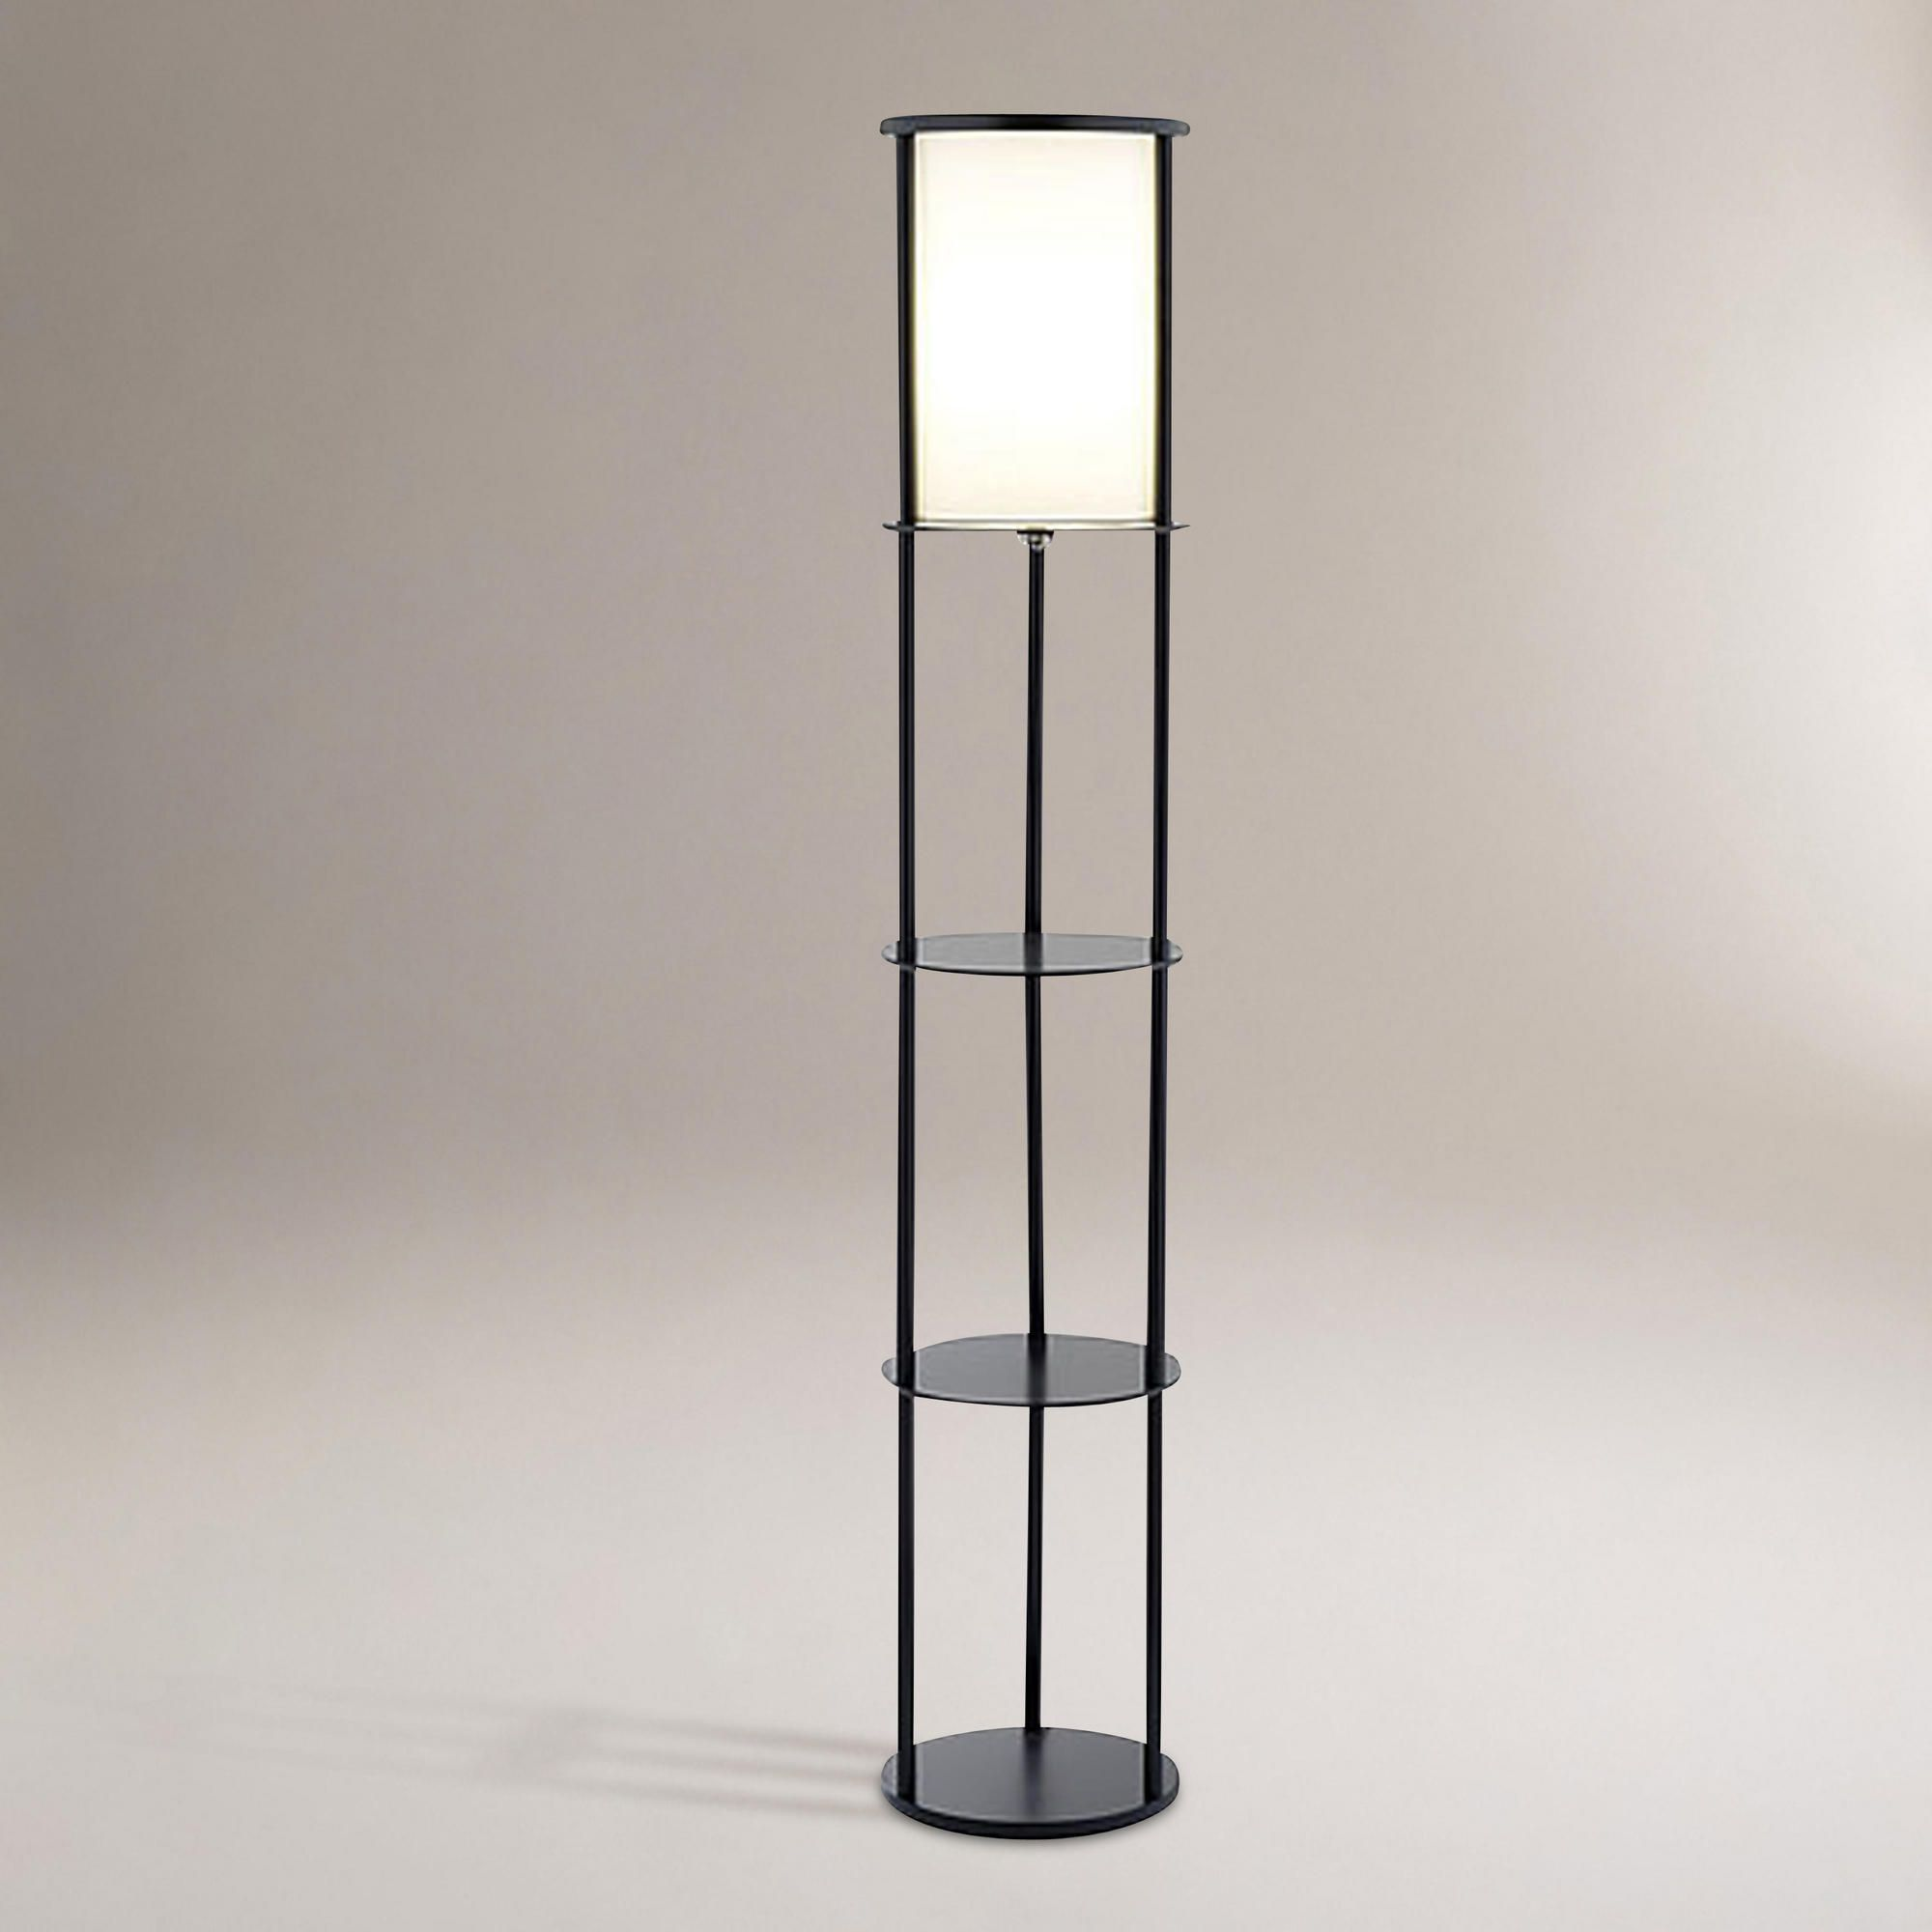 Double duty light/shelves? Floor lamp with shelves, Lamp